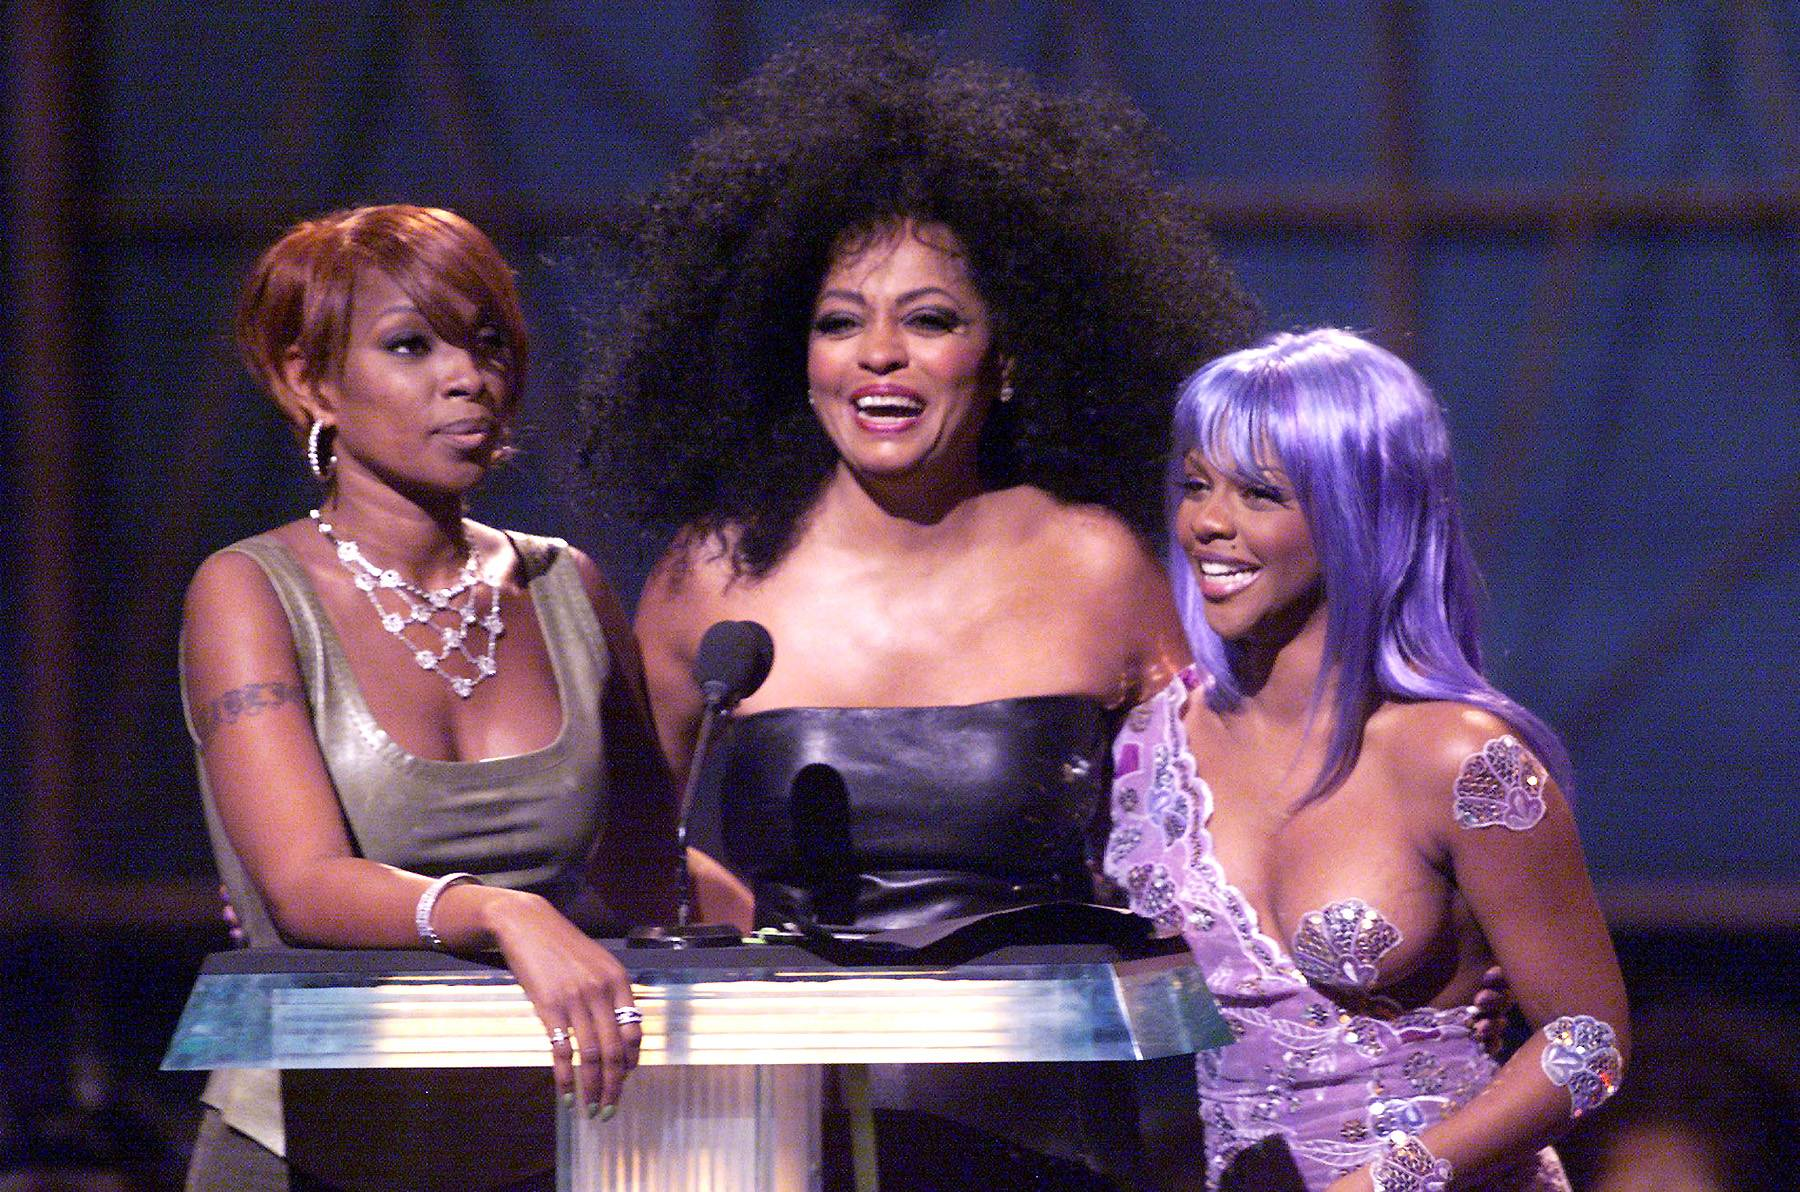 That Time Diana Ross Grabbed Kimmie's Boob on TV - (Photo: Frank Micelotta/ImageDirect)